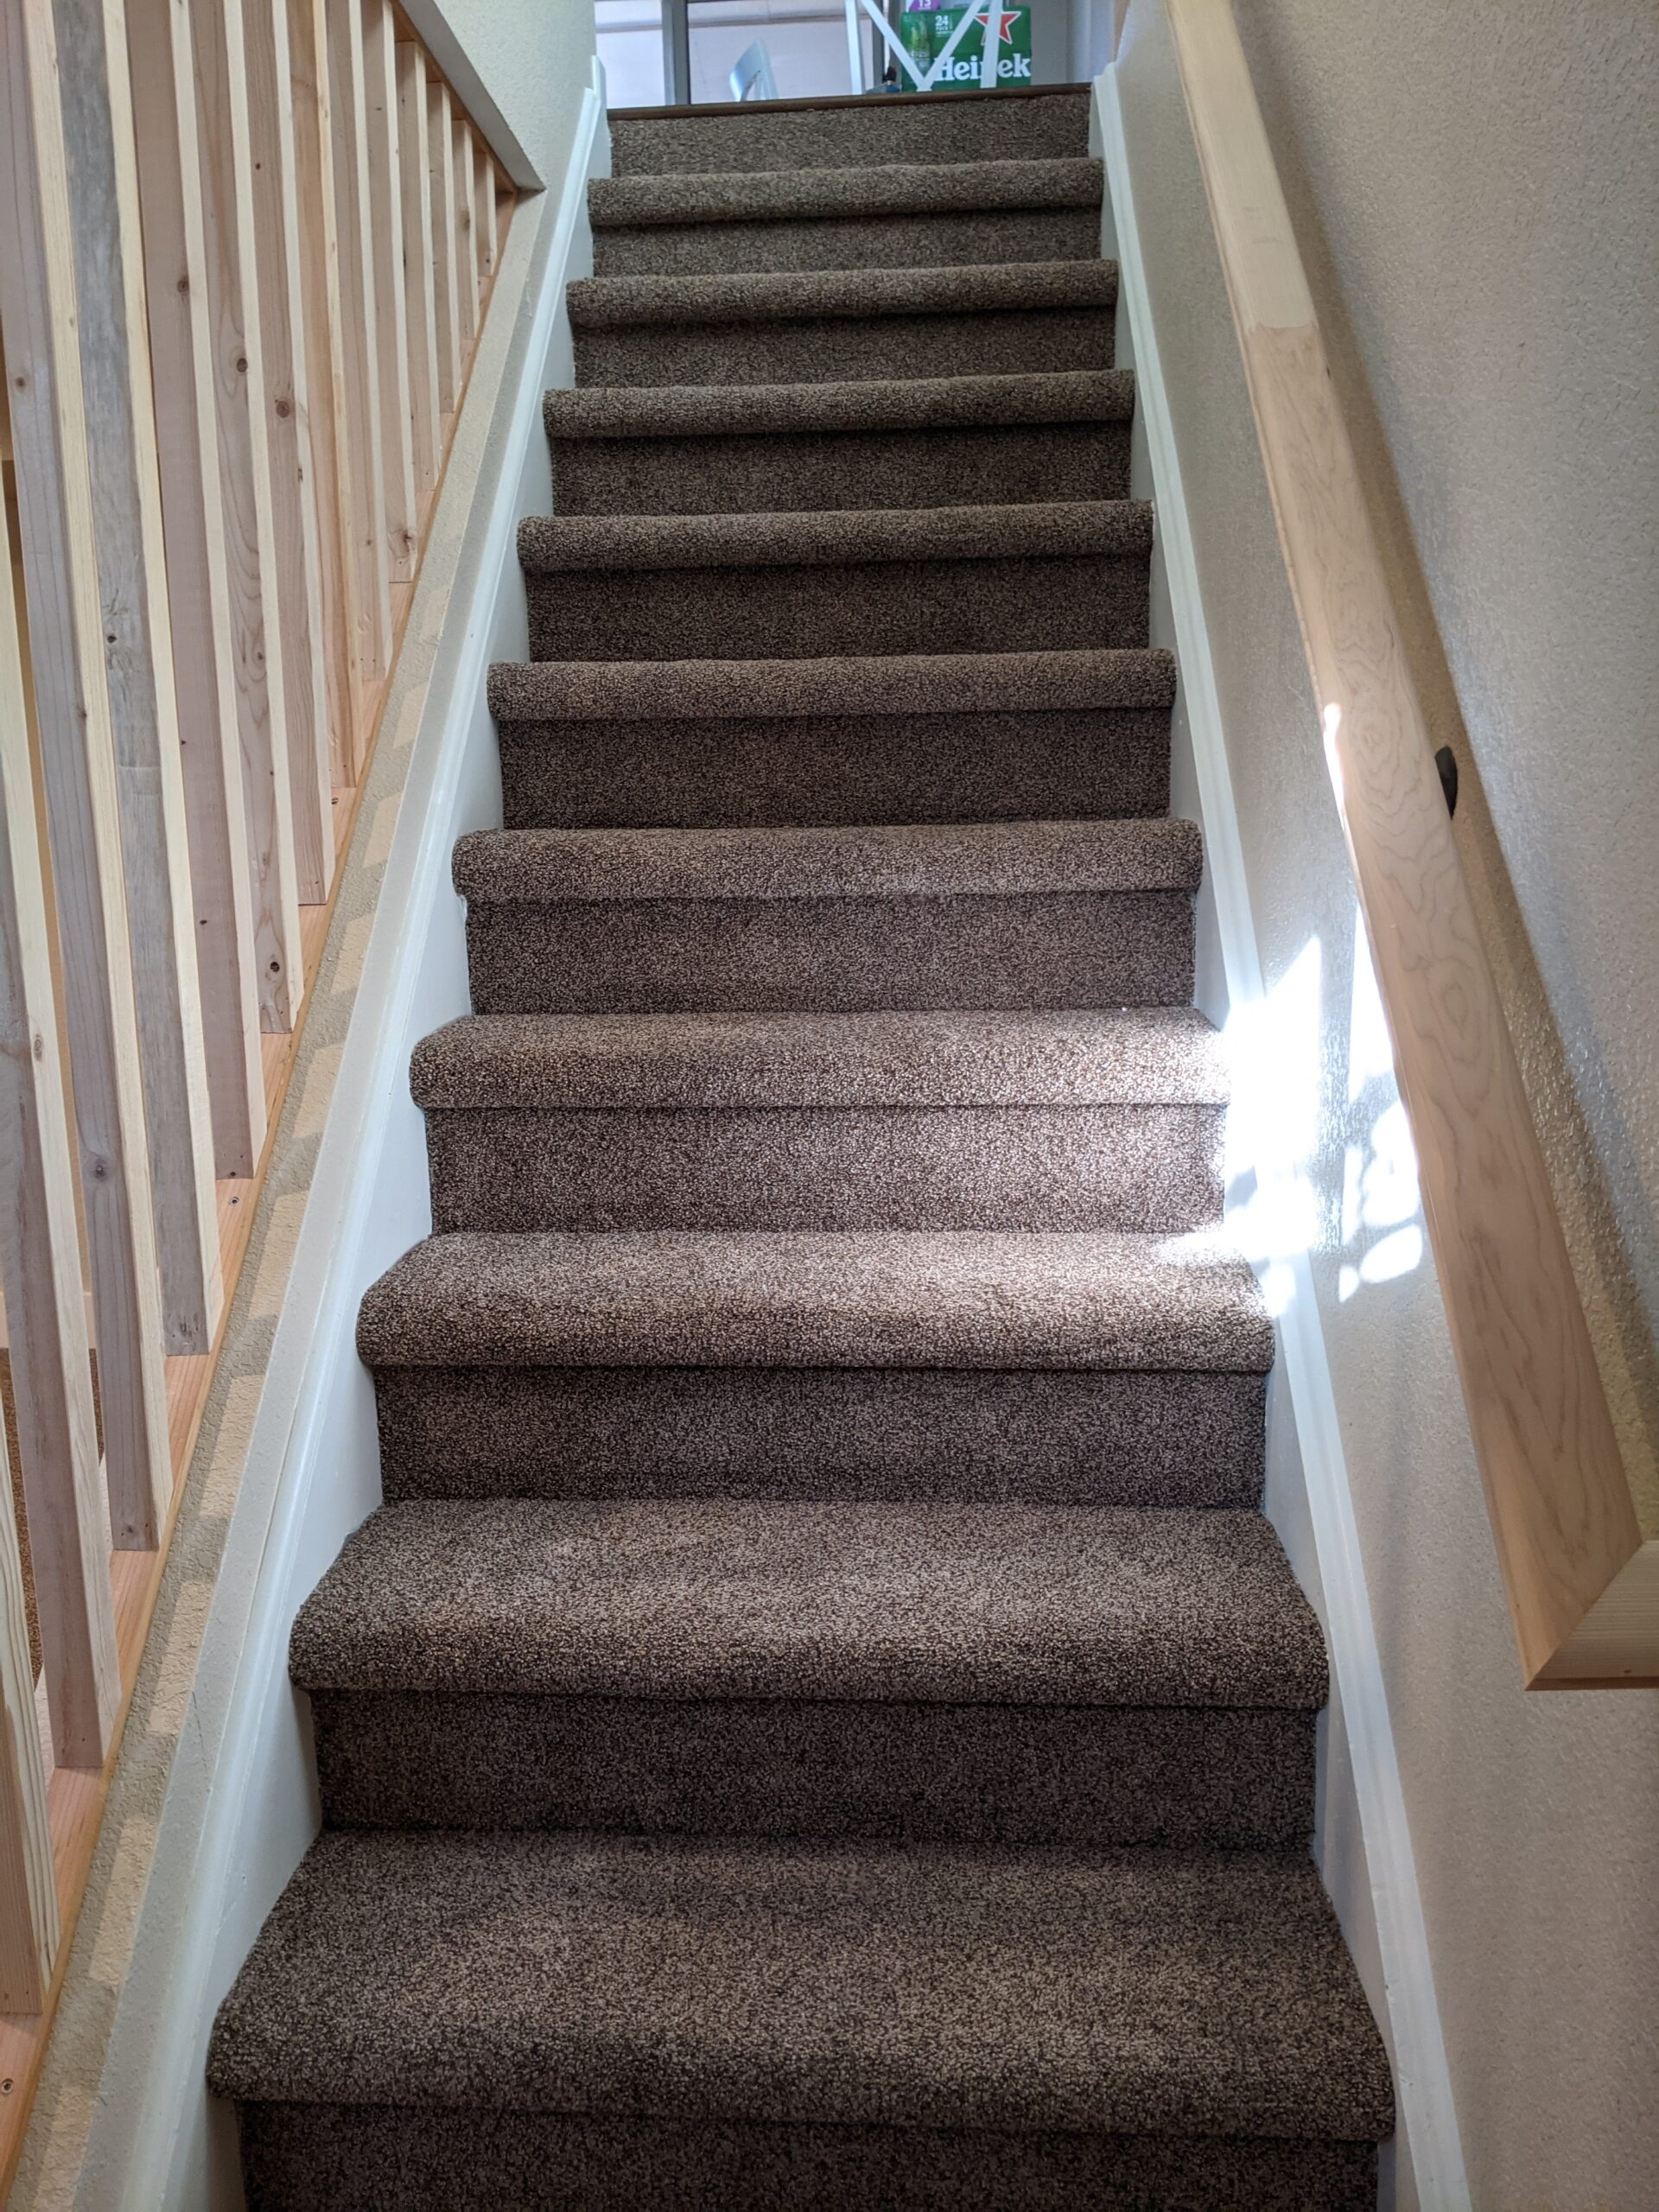 AFTER: The finished stairway with handrail, guardrail, carpeting, drywall, trim, & paint